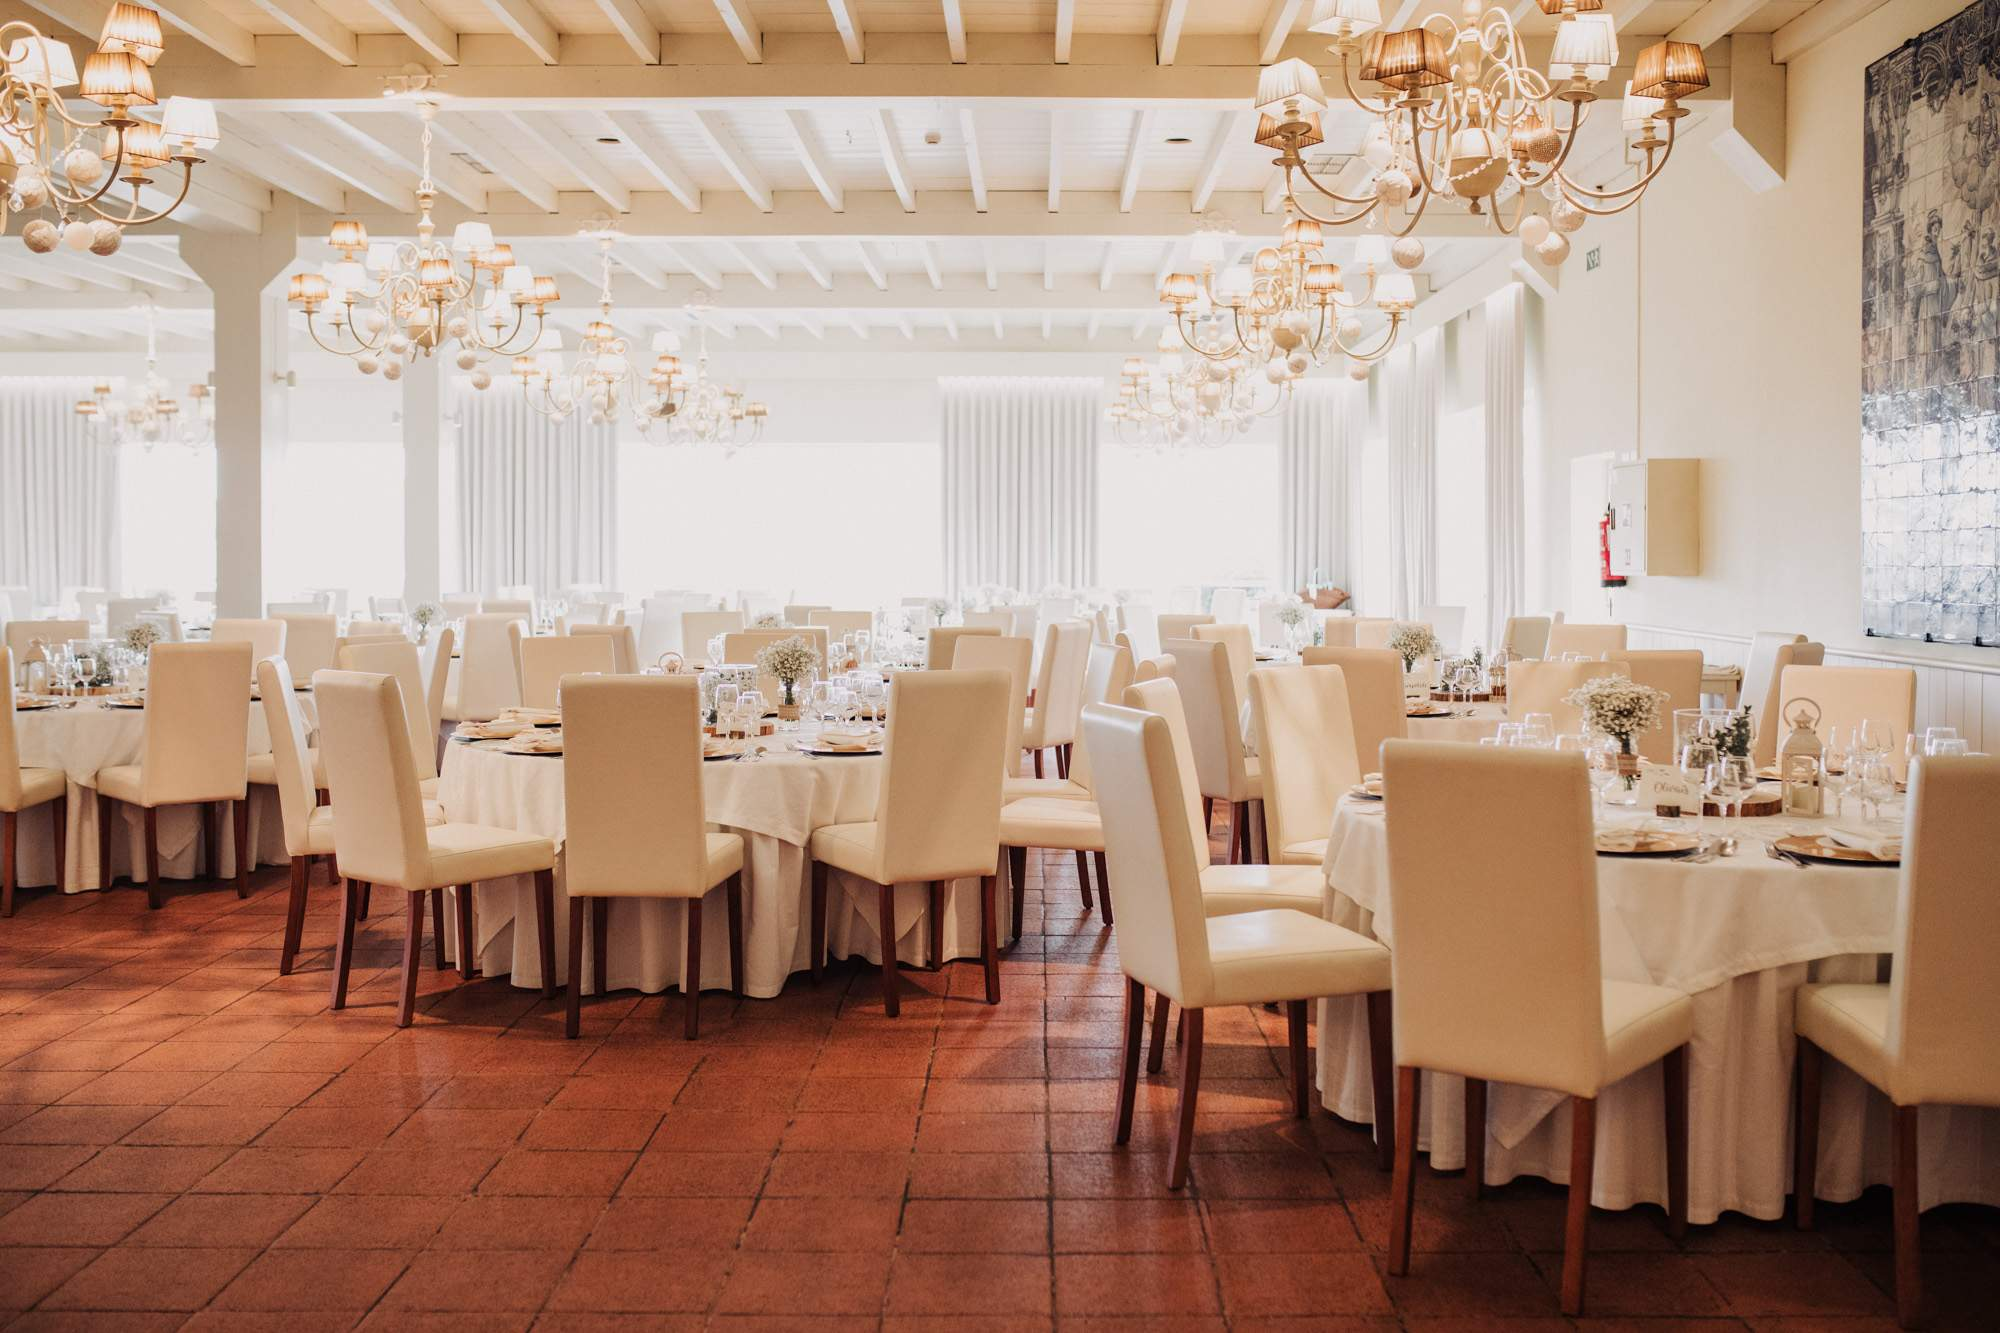 Original venues in Portugal for weddings and corporate events